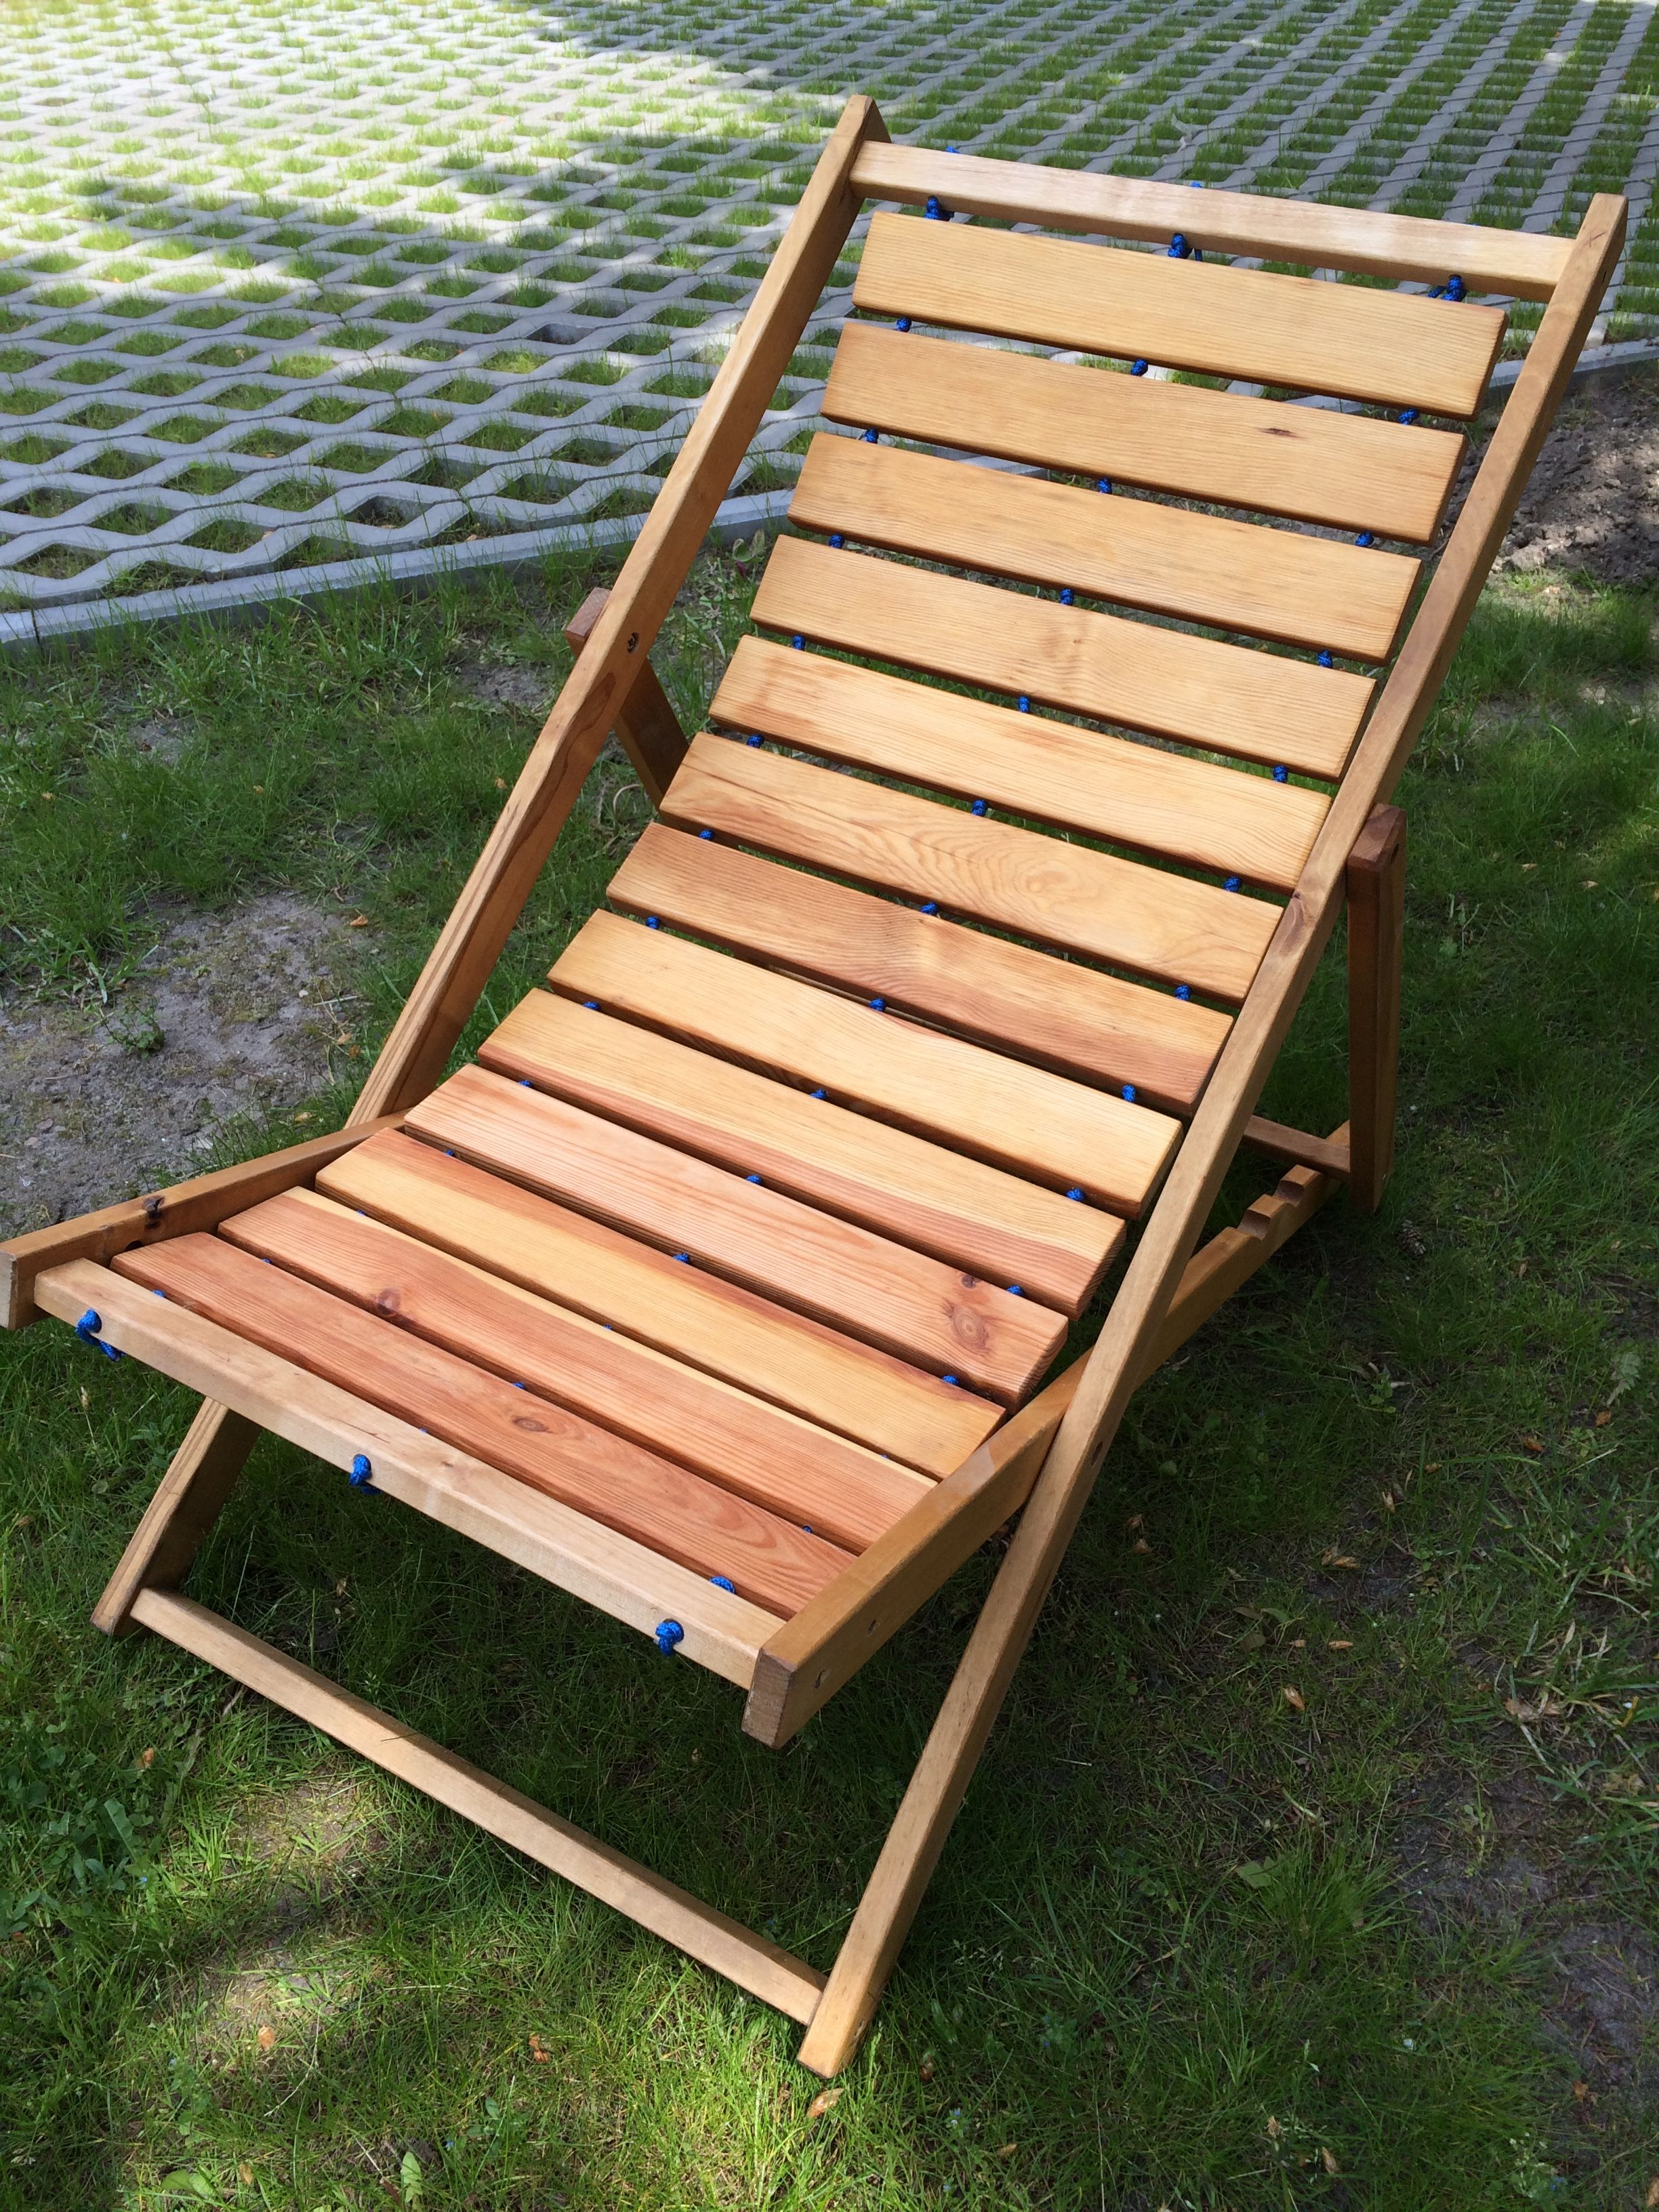 how to make a wooden beach chair wedding covers for sale uk diy scrapwood sunbed deck general likes pinterest